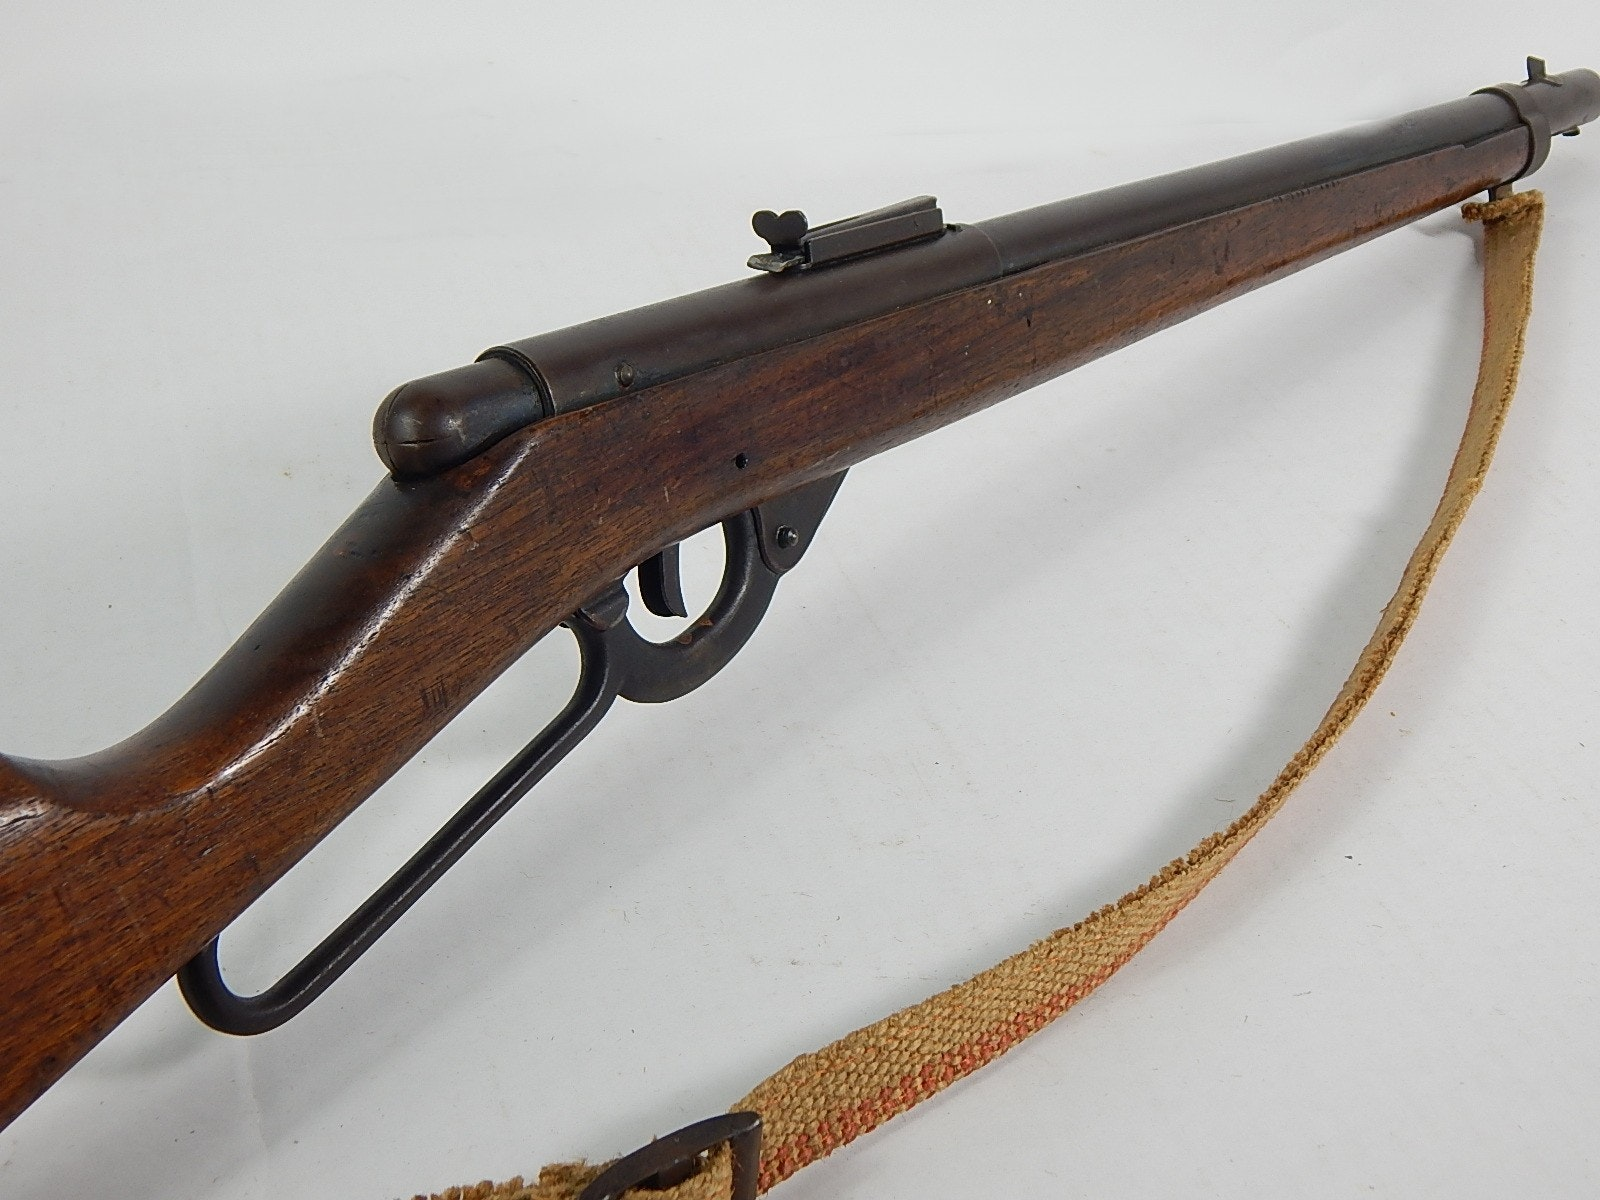 Circa Early 1900s Daisy No. 40 BB Gun